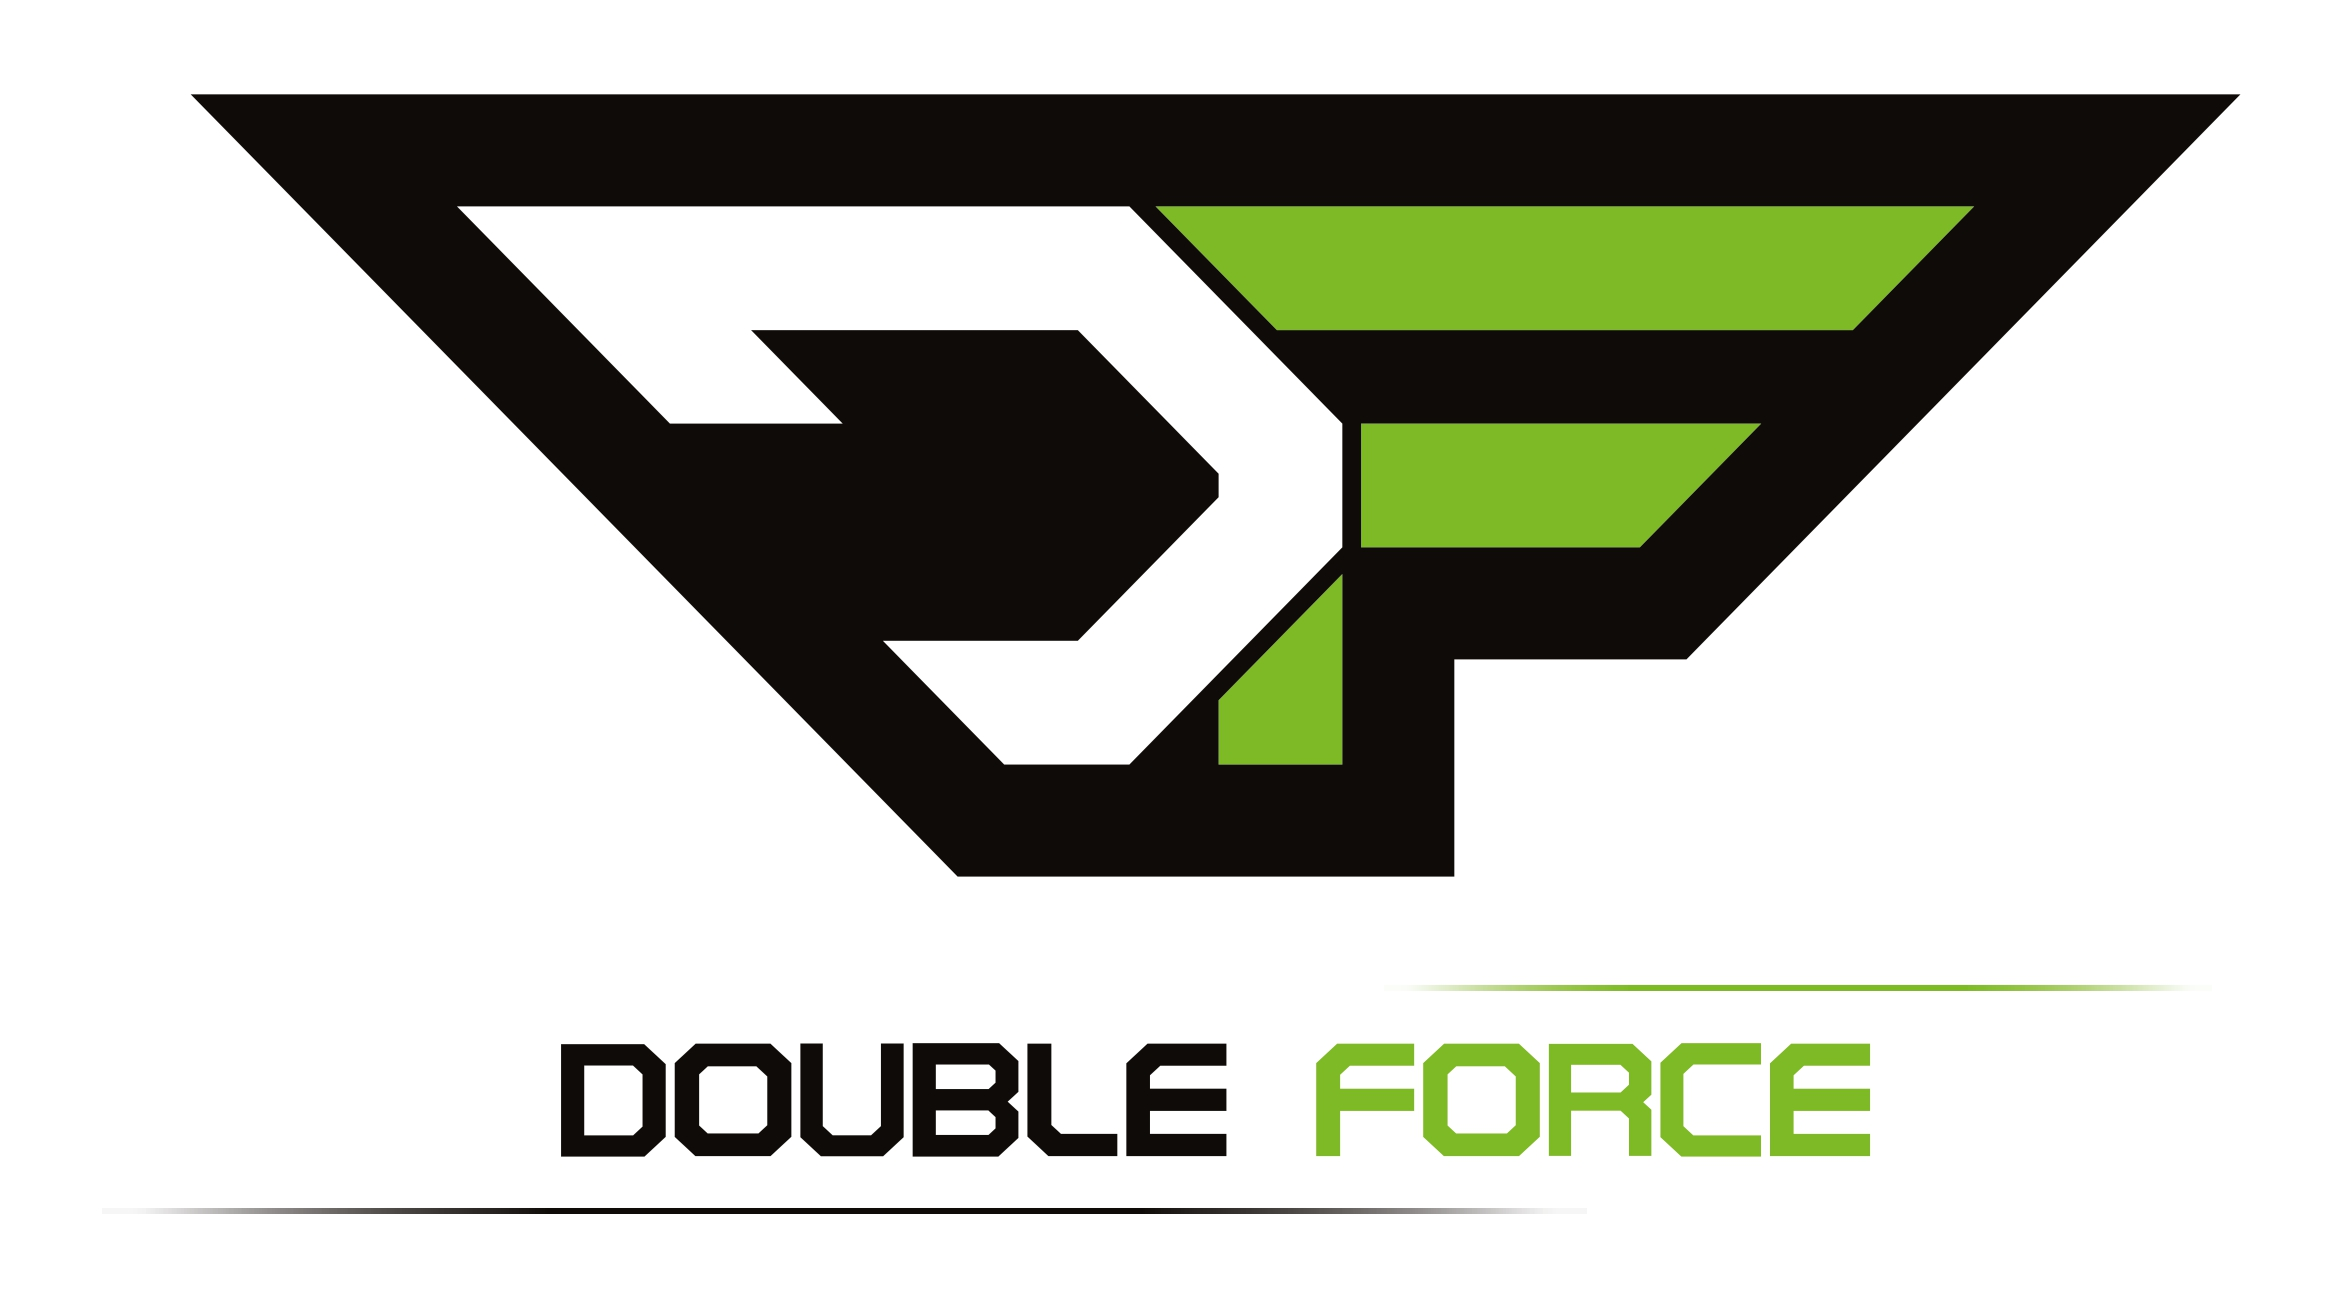 Фитнес-клуб Double Force Лого